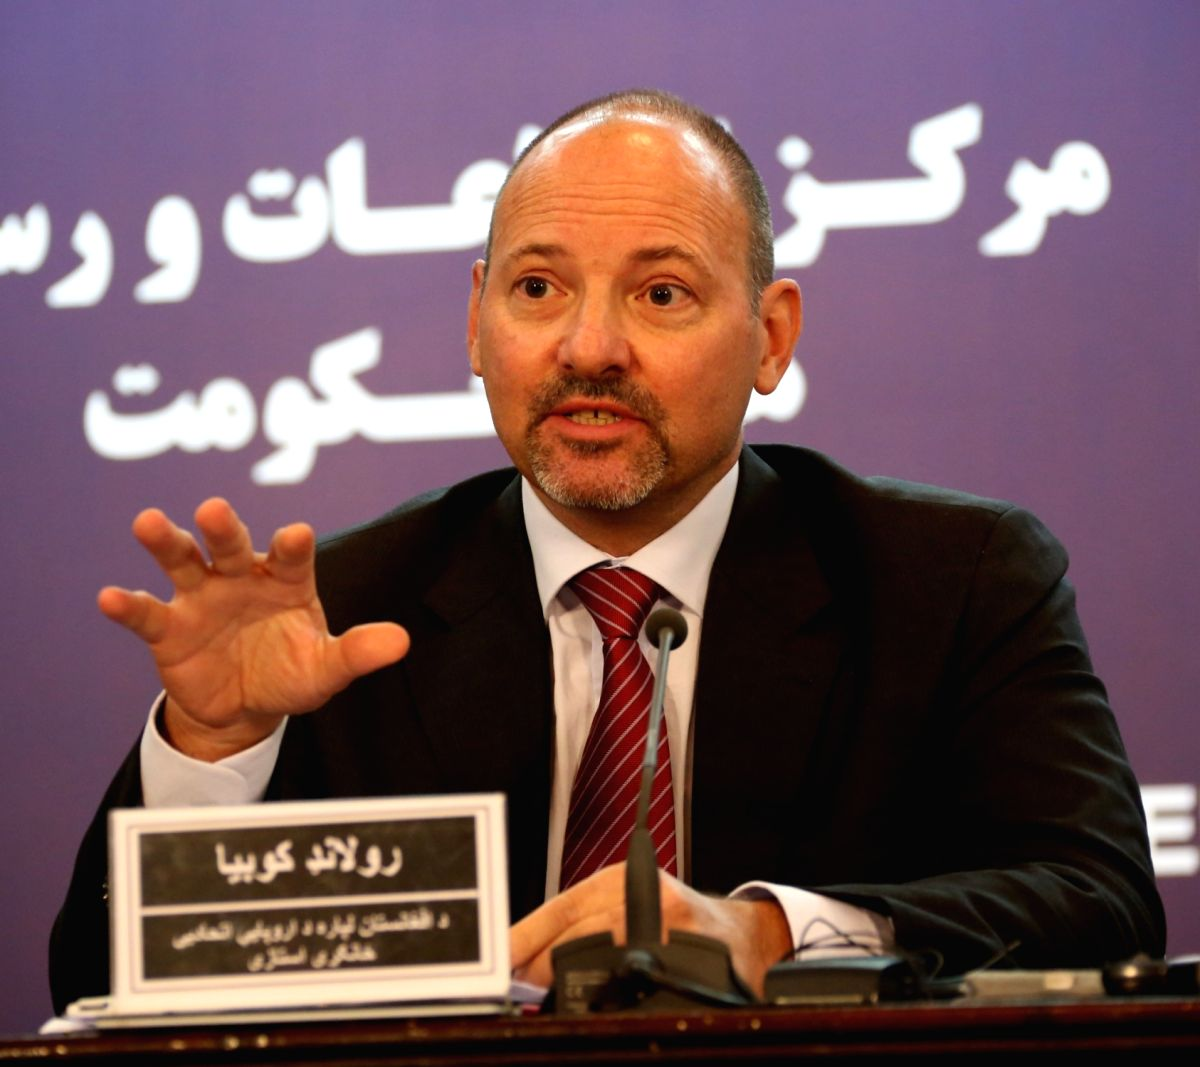 KABUL, Oct. 26, 2017 (Xinhua) -- Roland Kobia, European Union Special Envoy for Afghanistan, speaks during a press conference in Kabul, Afghanistan, Oct.26, 2017. (Xinhua/Rahmat Alizadah/IANS)